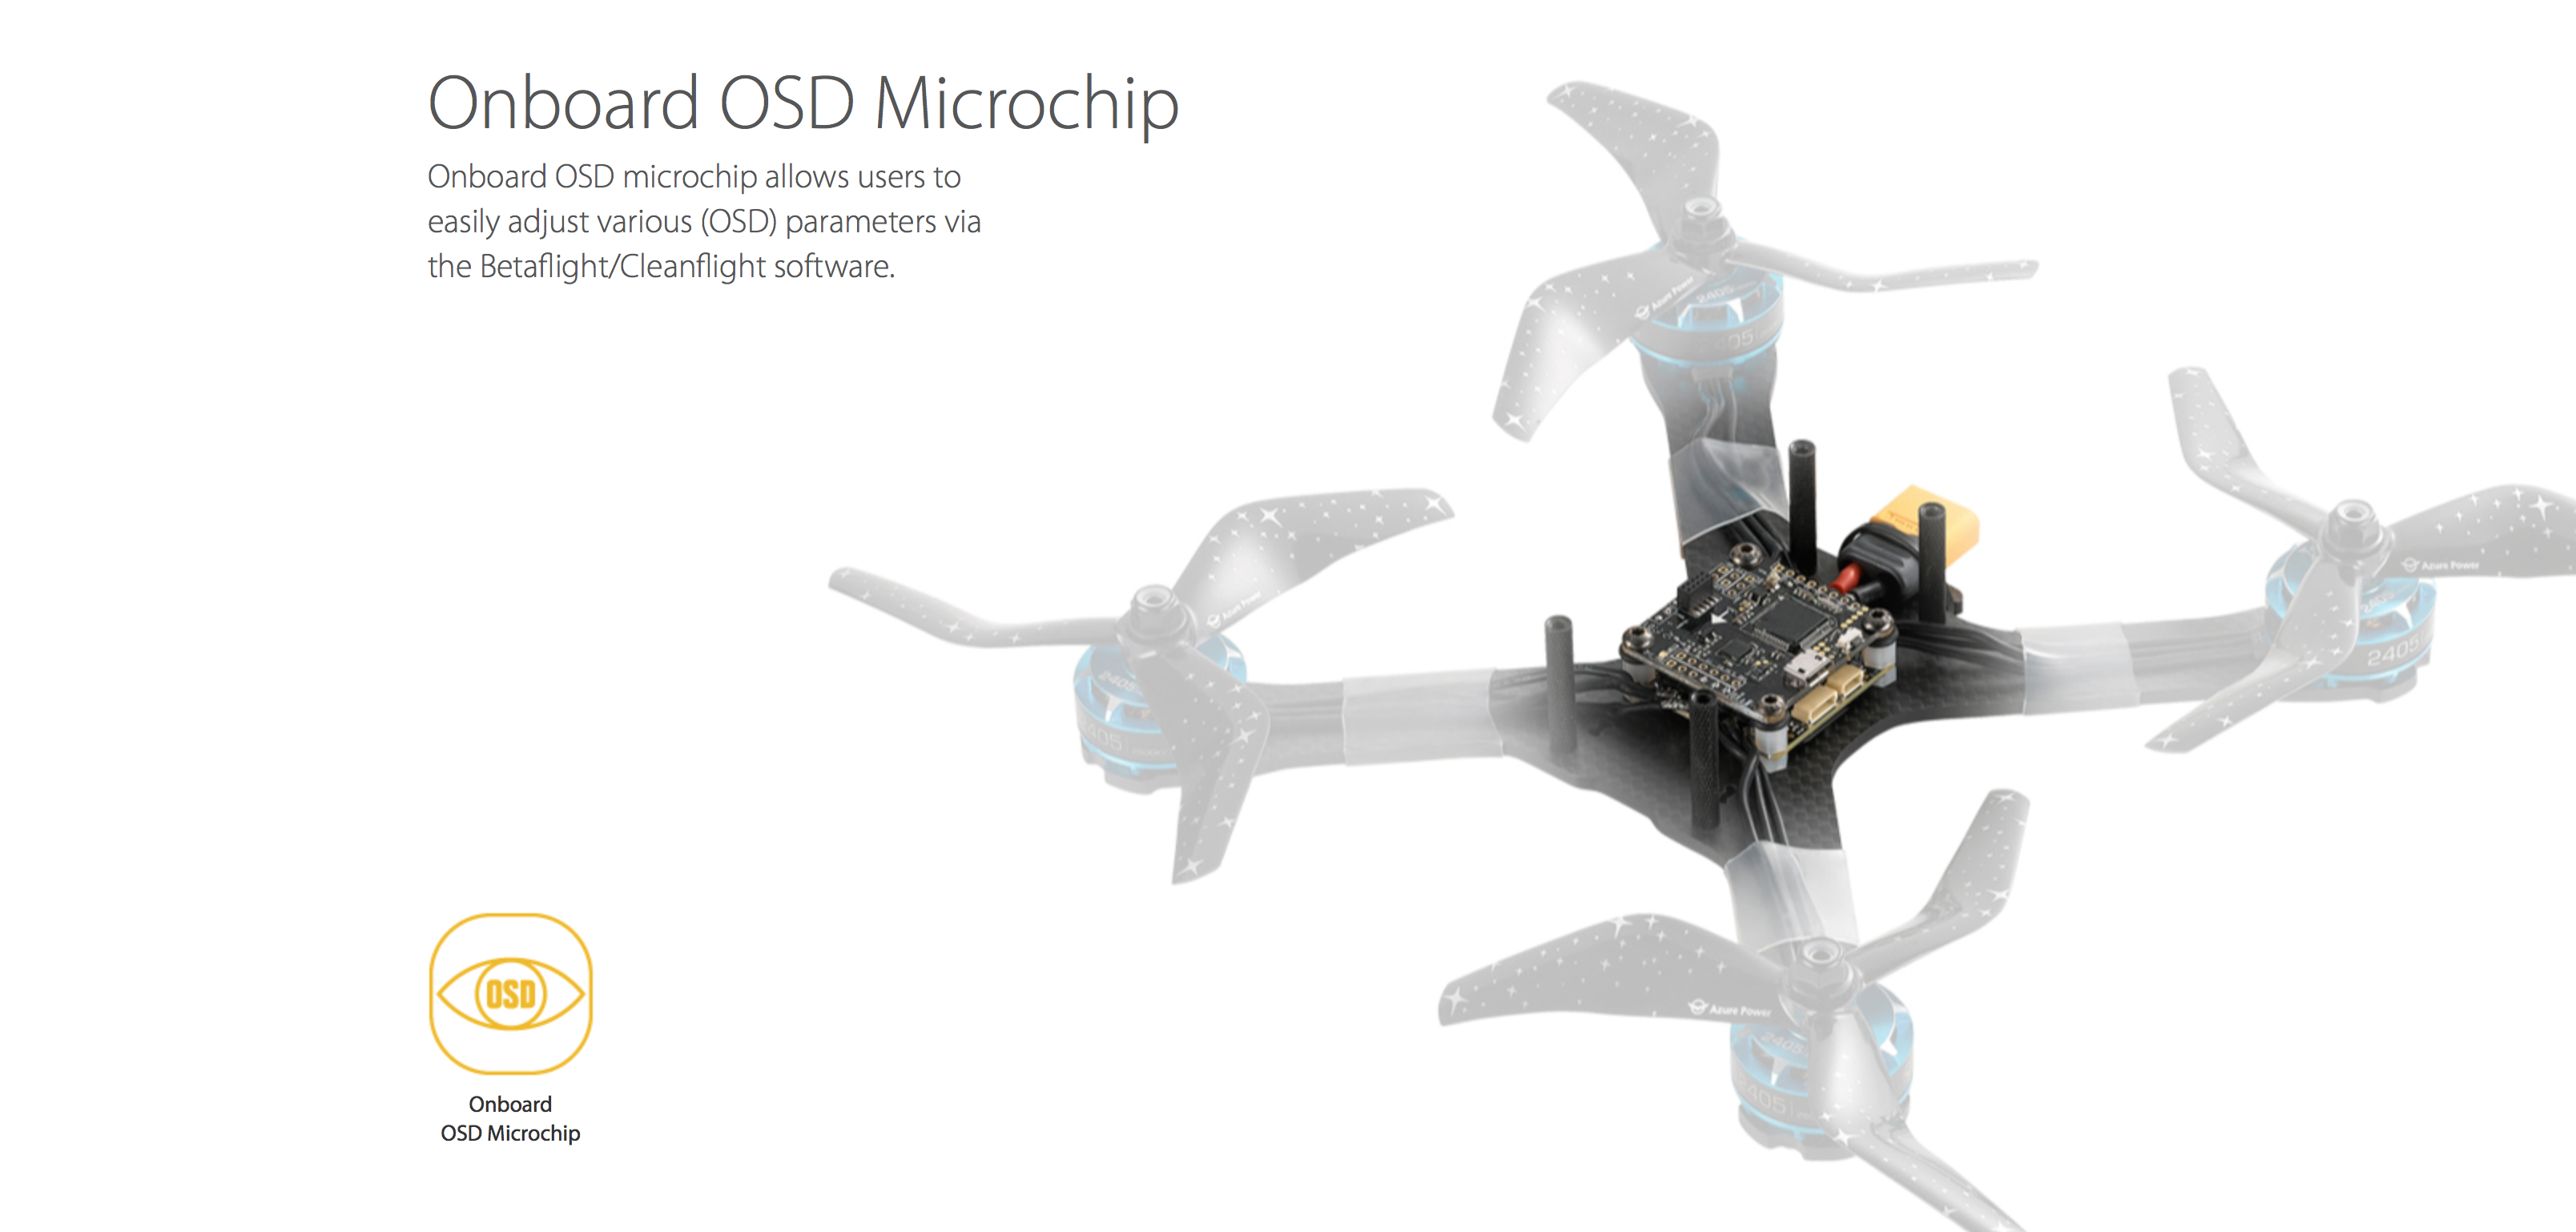 Onboard OSD Microchip Onboard OSD microchip allows users to easily adjust various (OSD) parameters via the Betaflight/Cleanflight software.